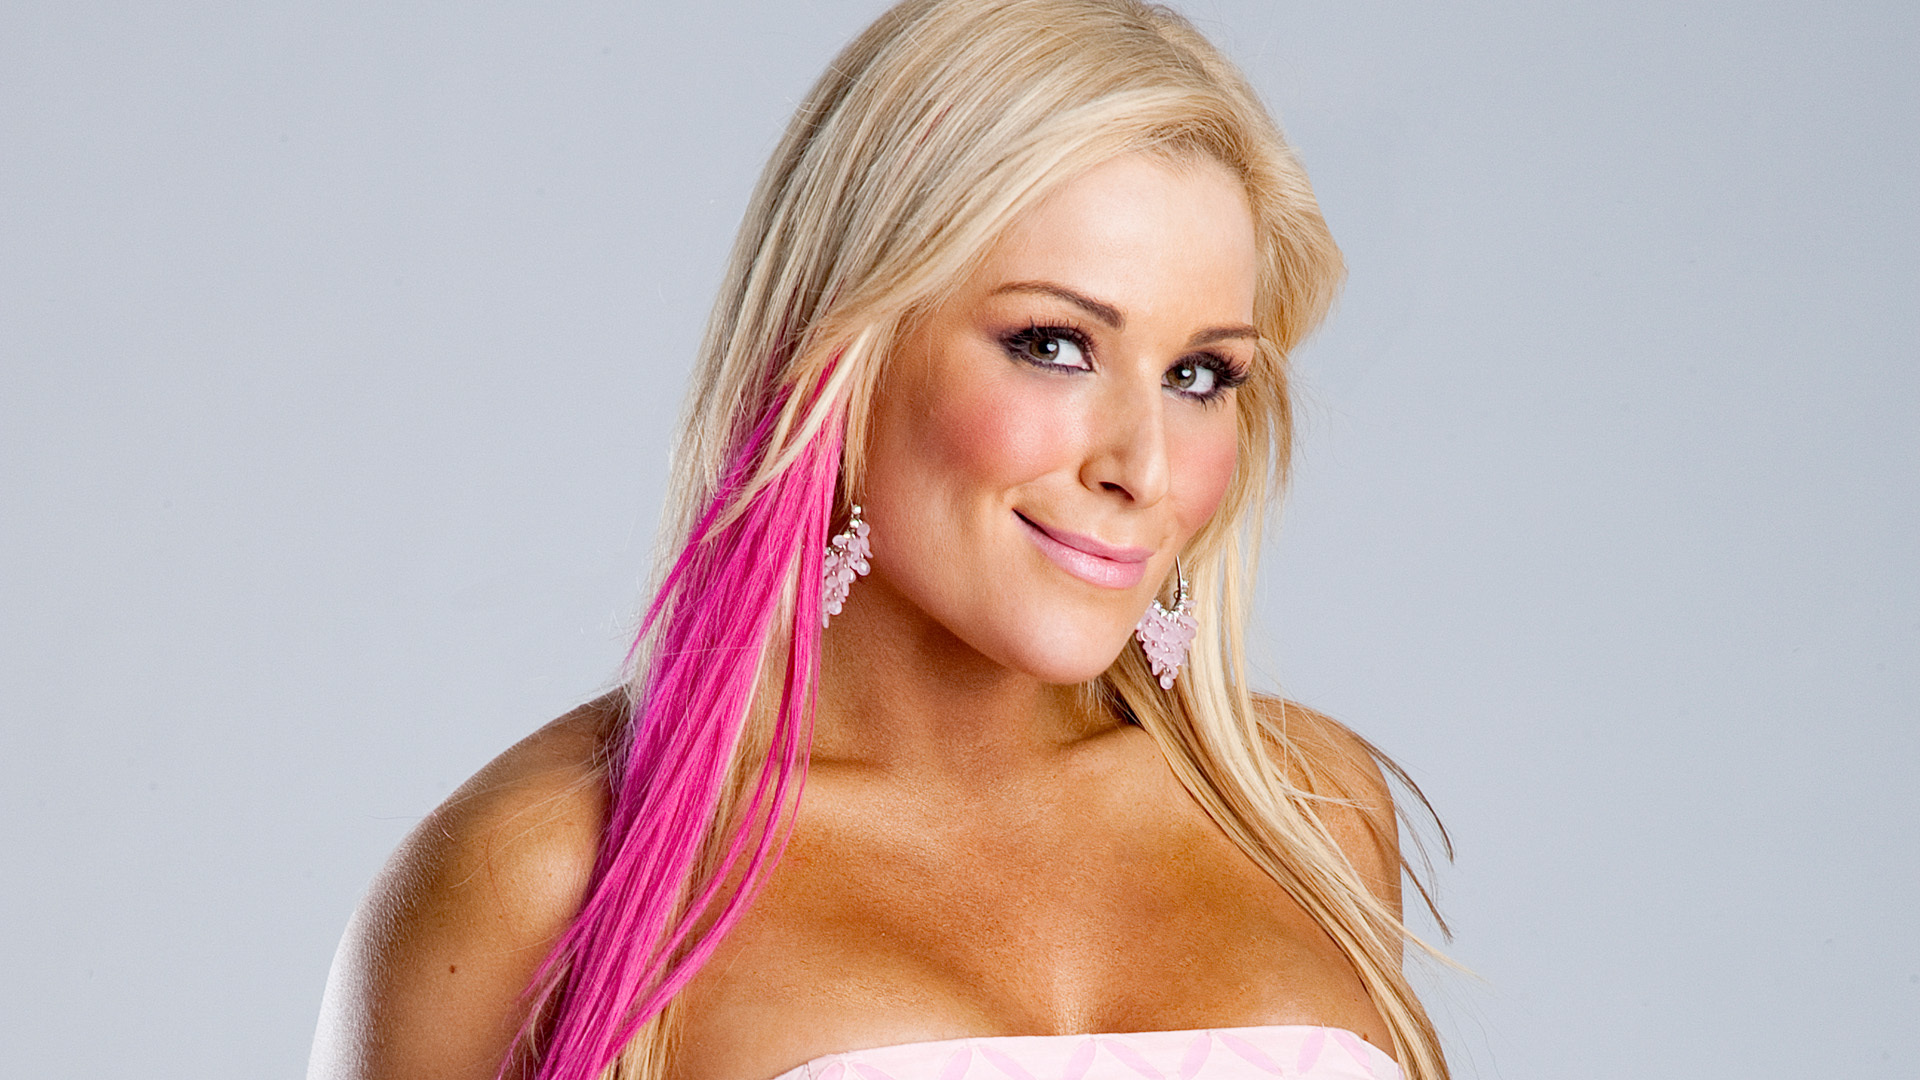 natalya wwe divas wallpaper 20702251 fanpop